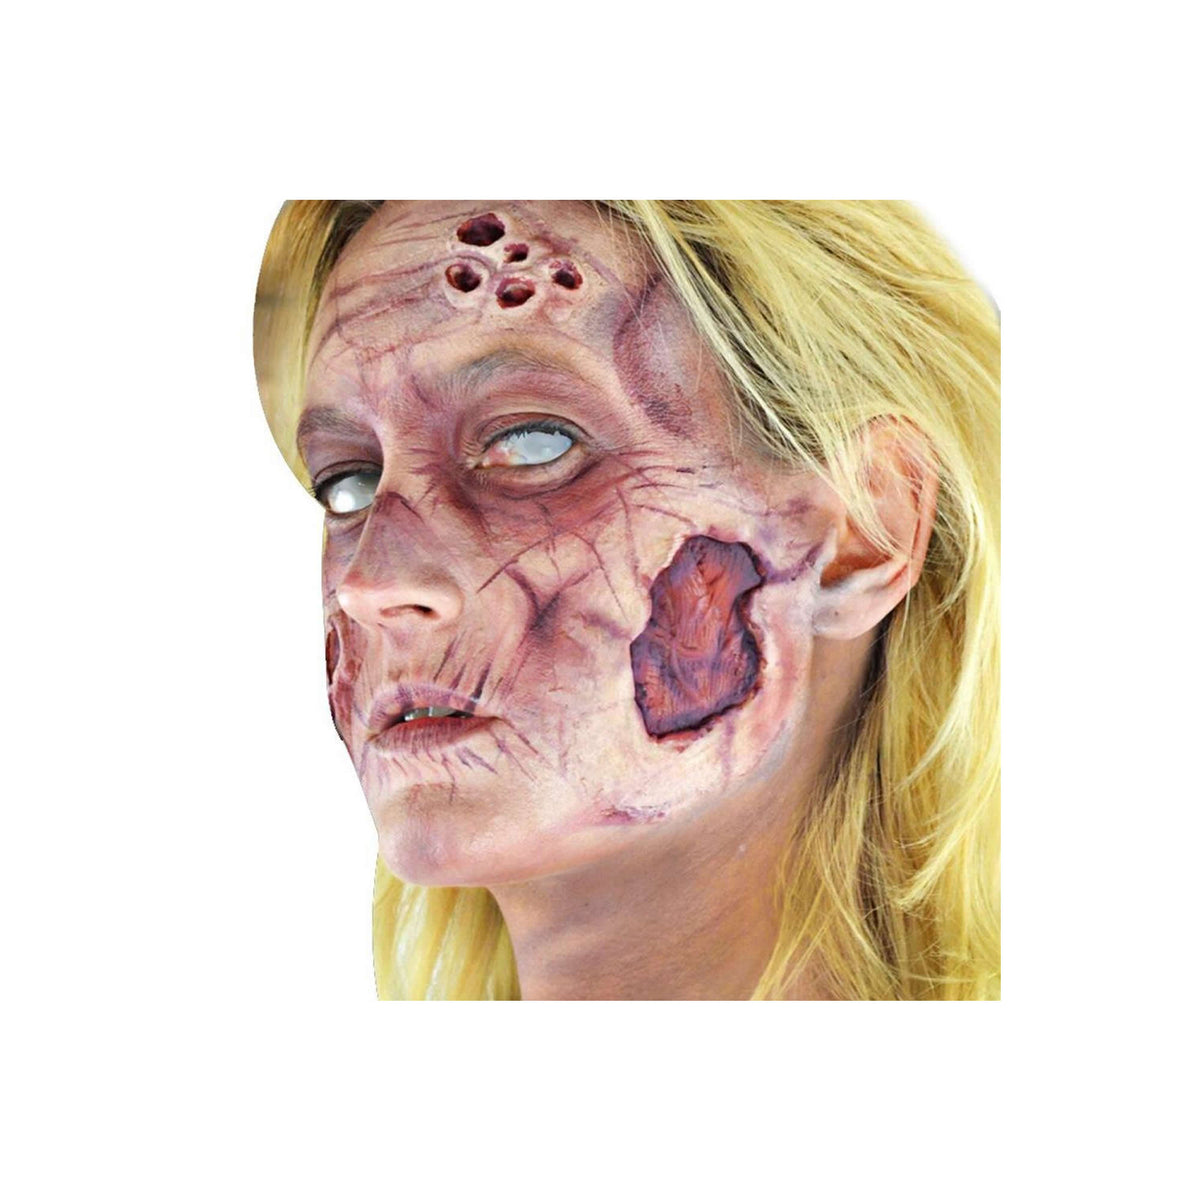 Woochie Zombie (Female) Deluxe FX Makeup Kit - Red Carpet FX - Professional Makeup